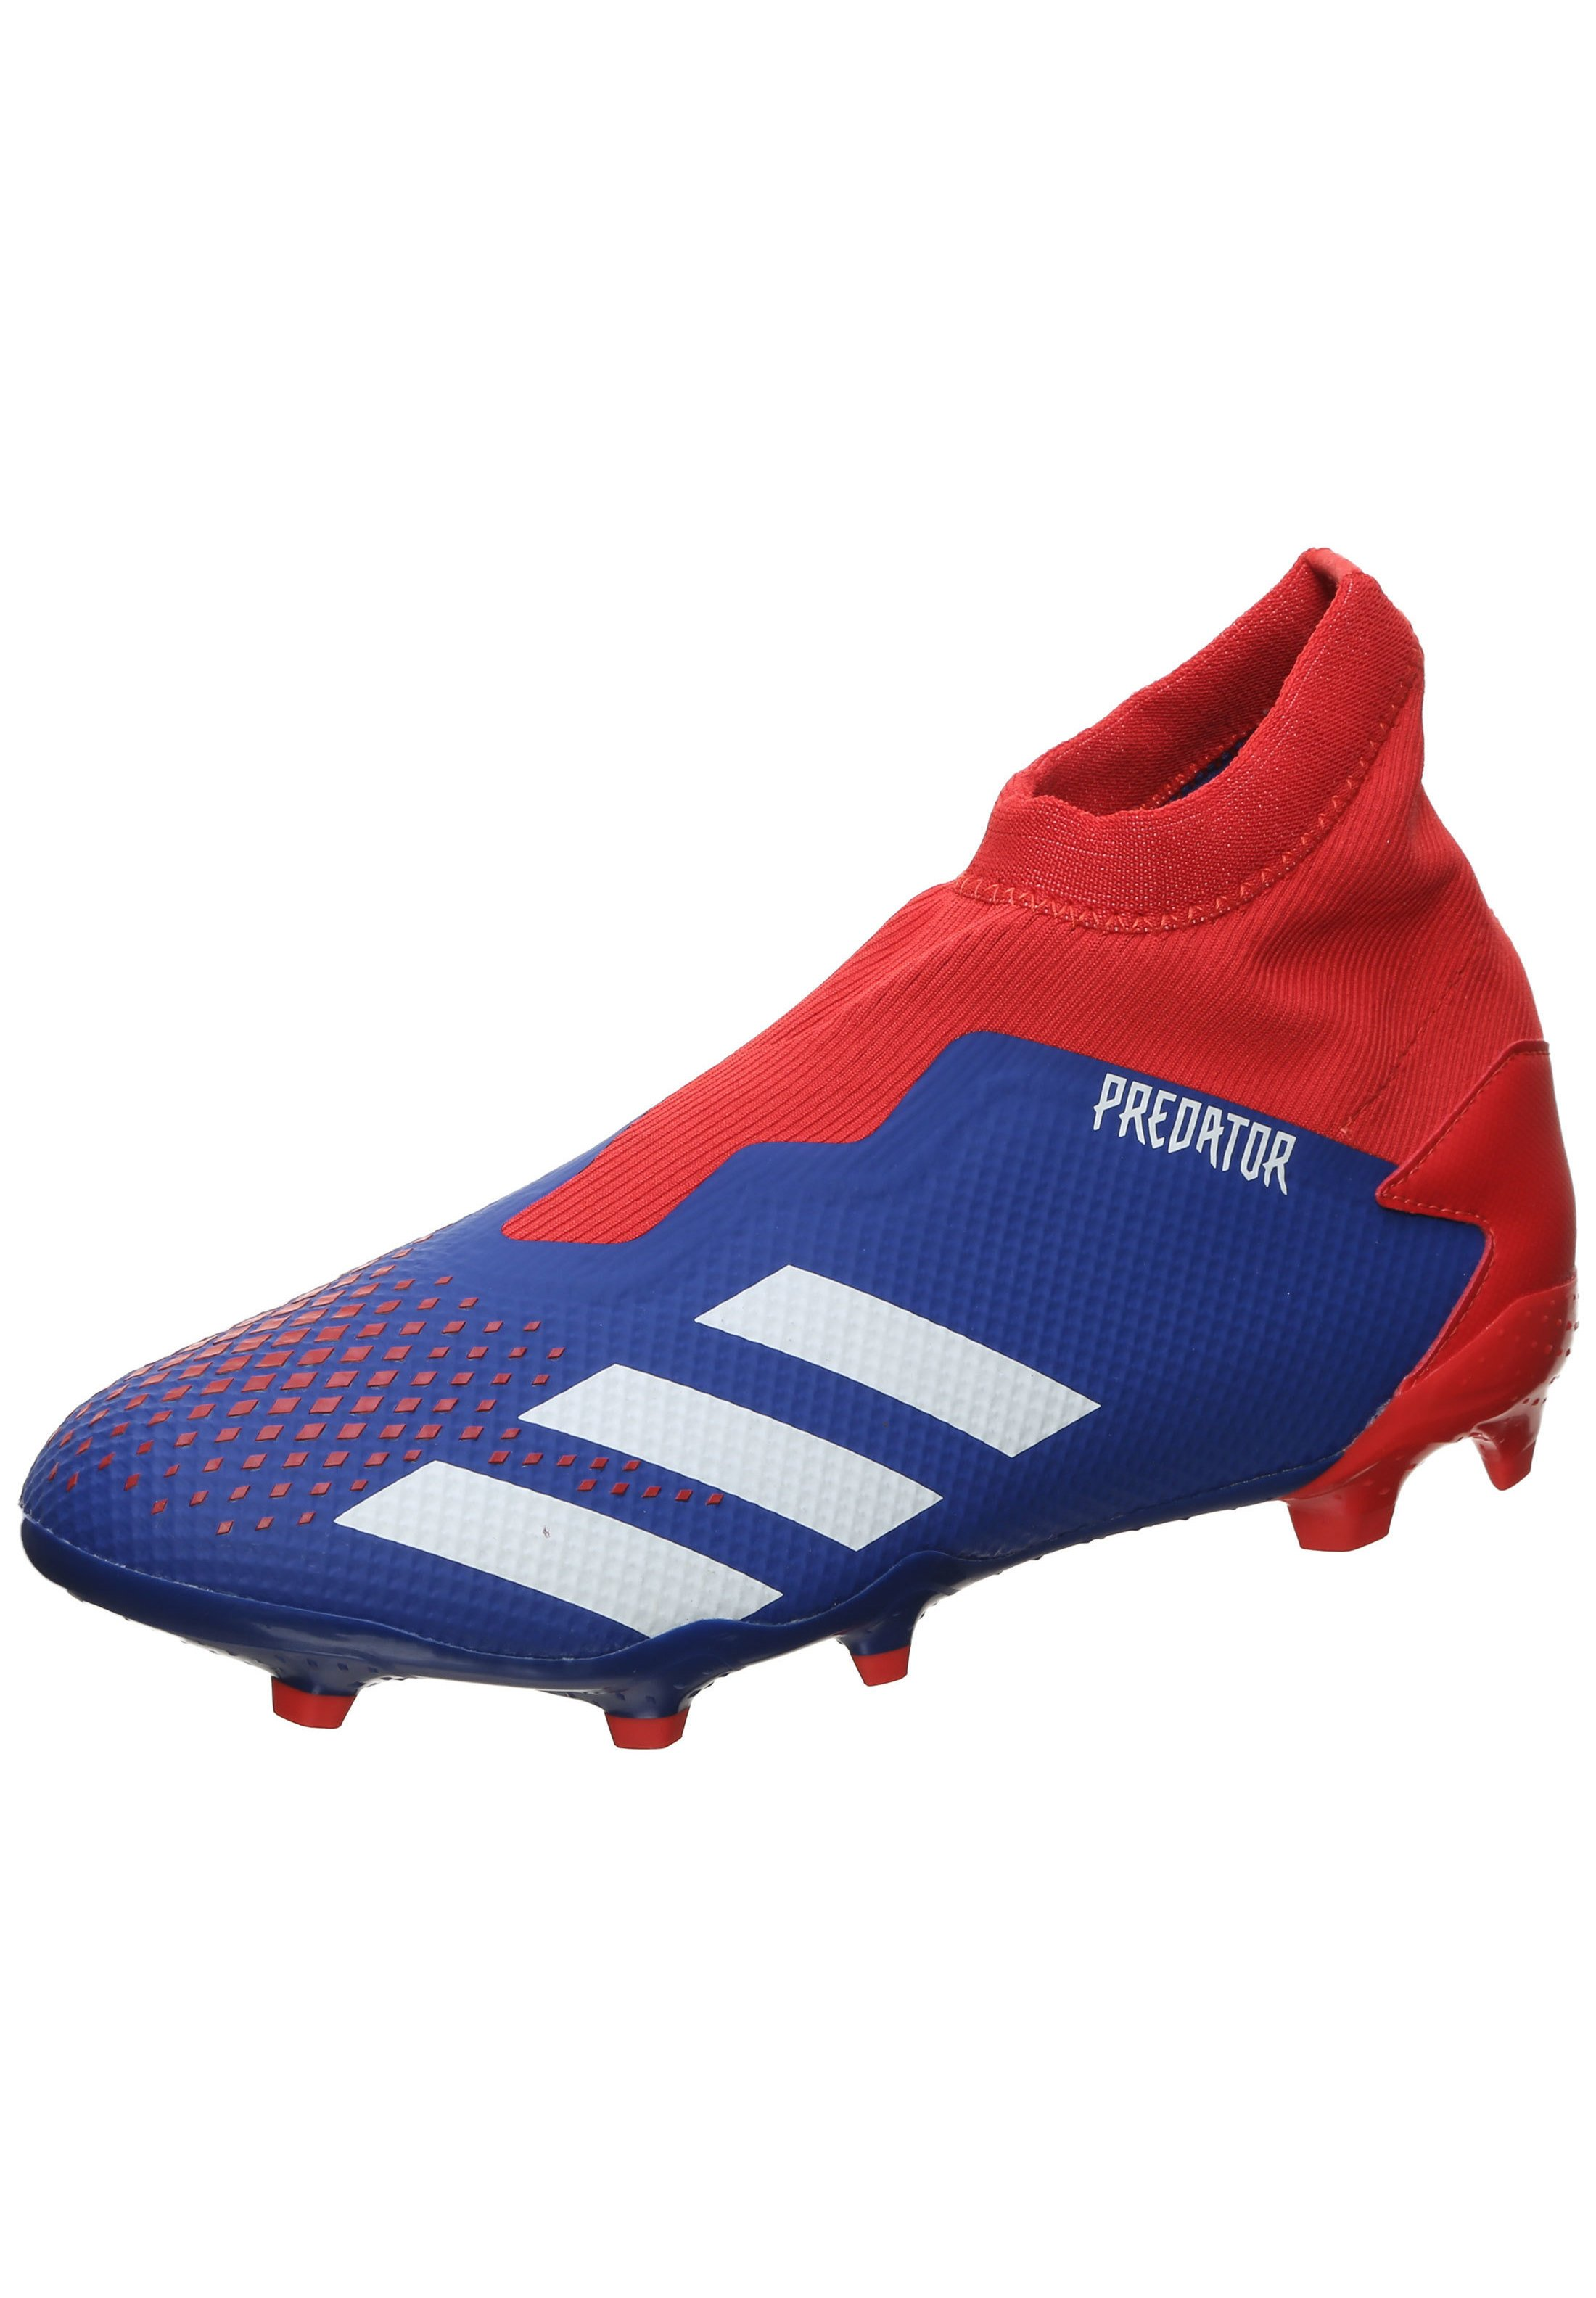 adidas Performance PREDATOR 20.3 FG FUSSBALLSCHUH HERREN - Fußballschuh Nocken - royal blue / footwear white / action red/blau - Herrenschuhe Cbxoa